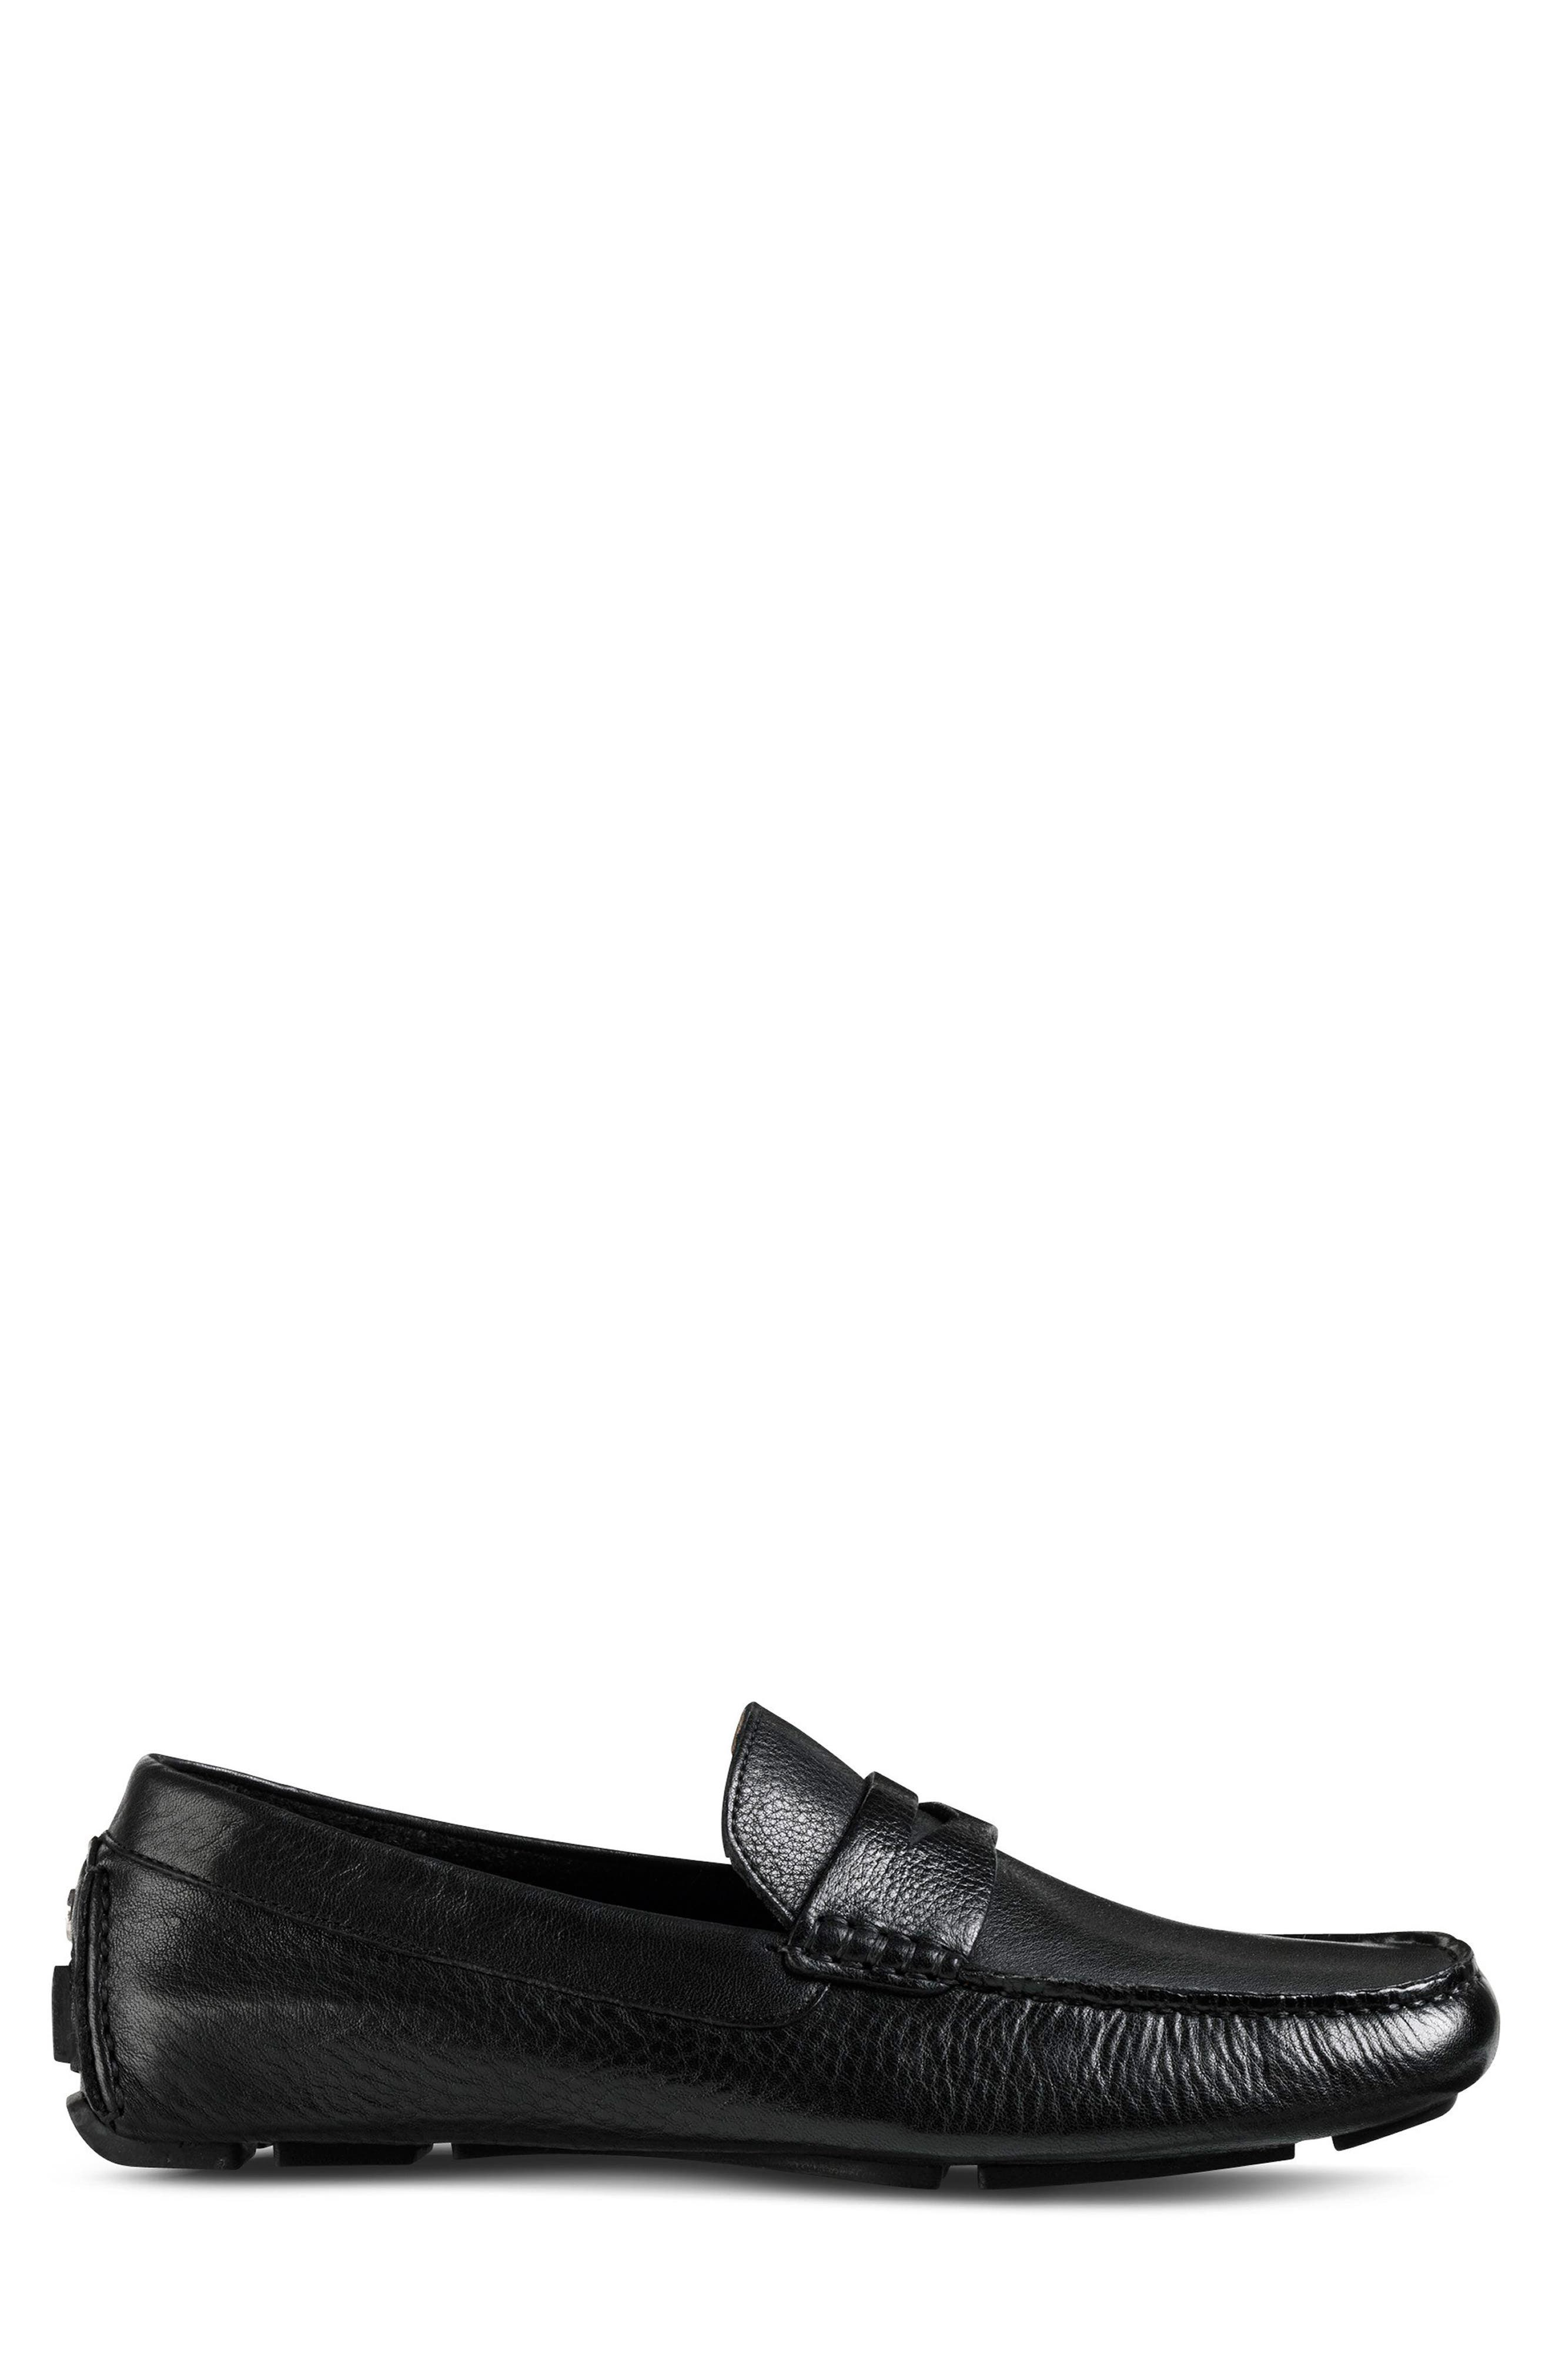 'Howland' Penny Loafer,                             Alternate thumbnail 4, color,                             BLACK TUMBLED